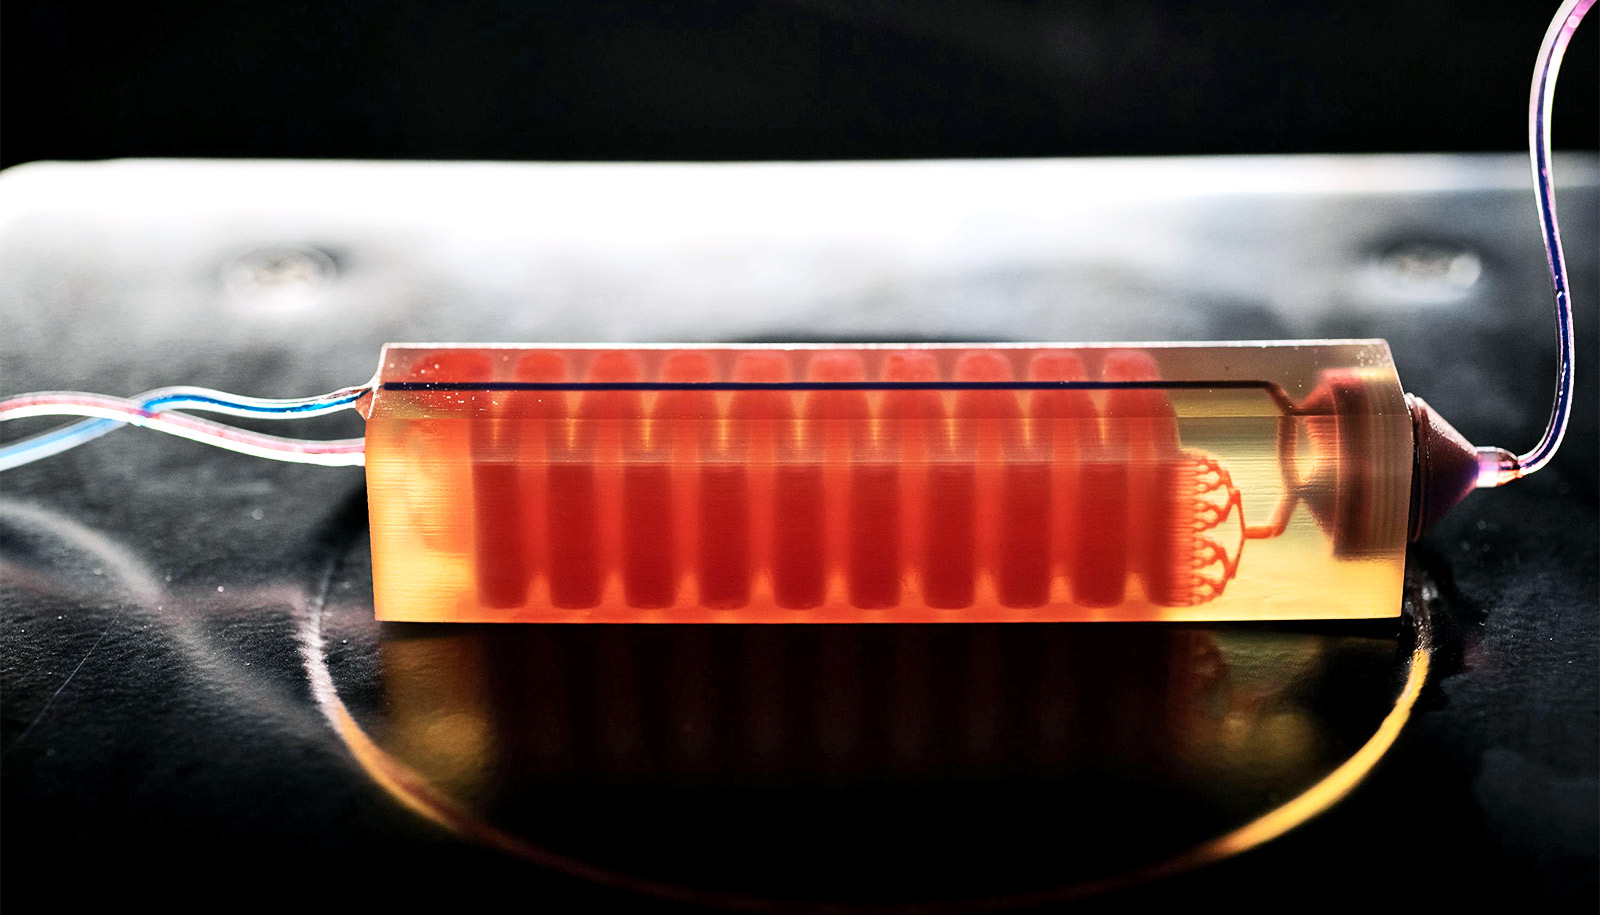 3D-printed device weeds out blood cells to find cancer